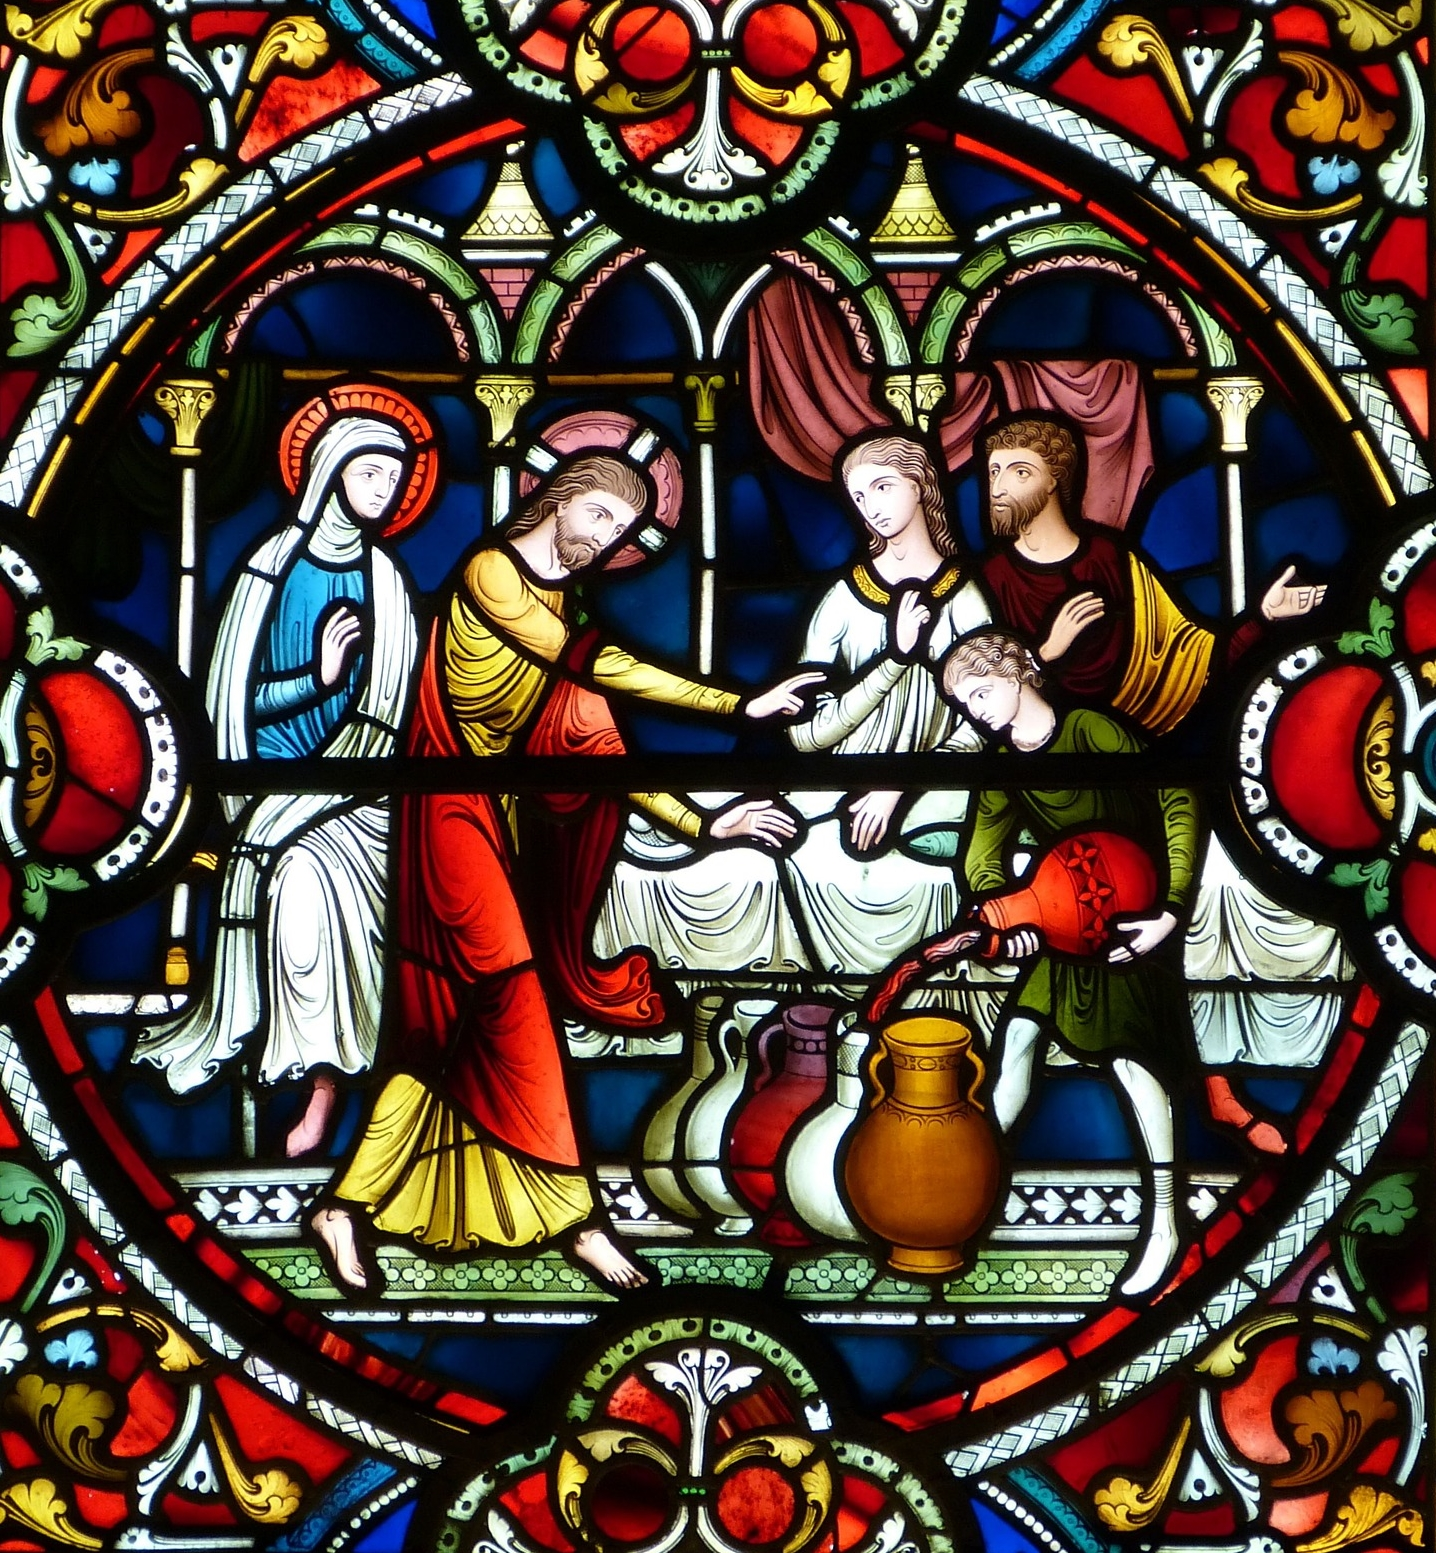 Stained glass window showing miracle at the wedding in Cana